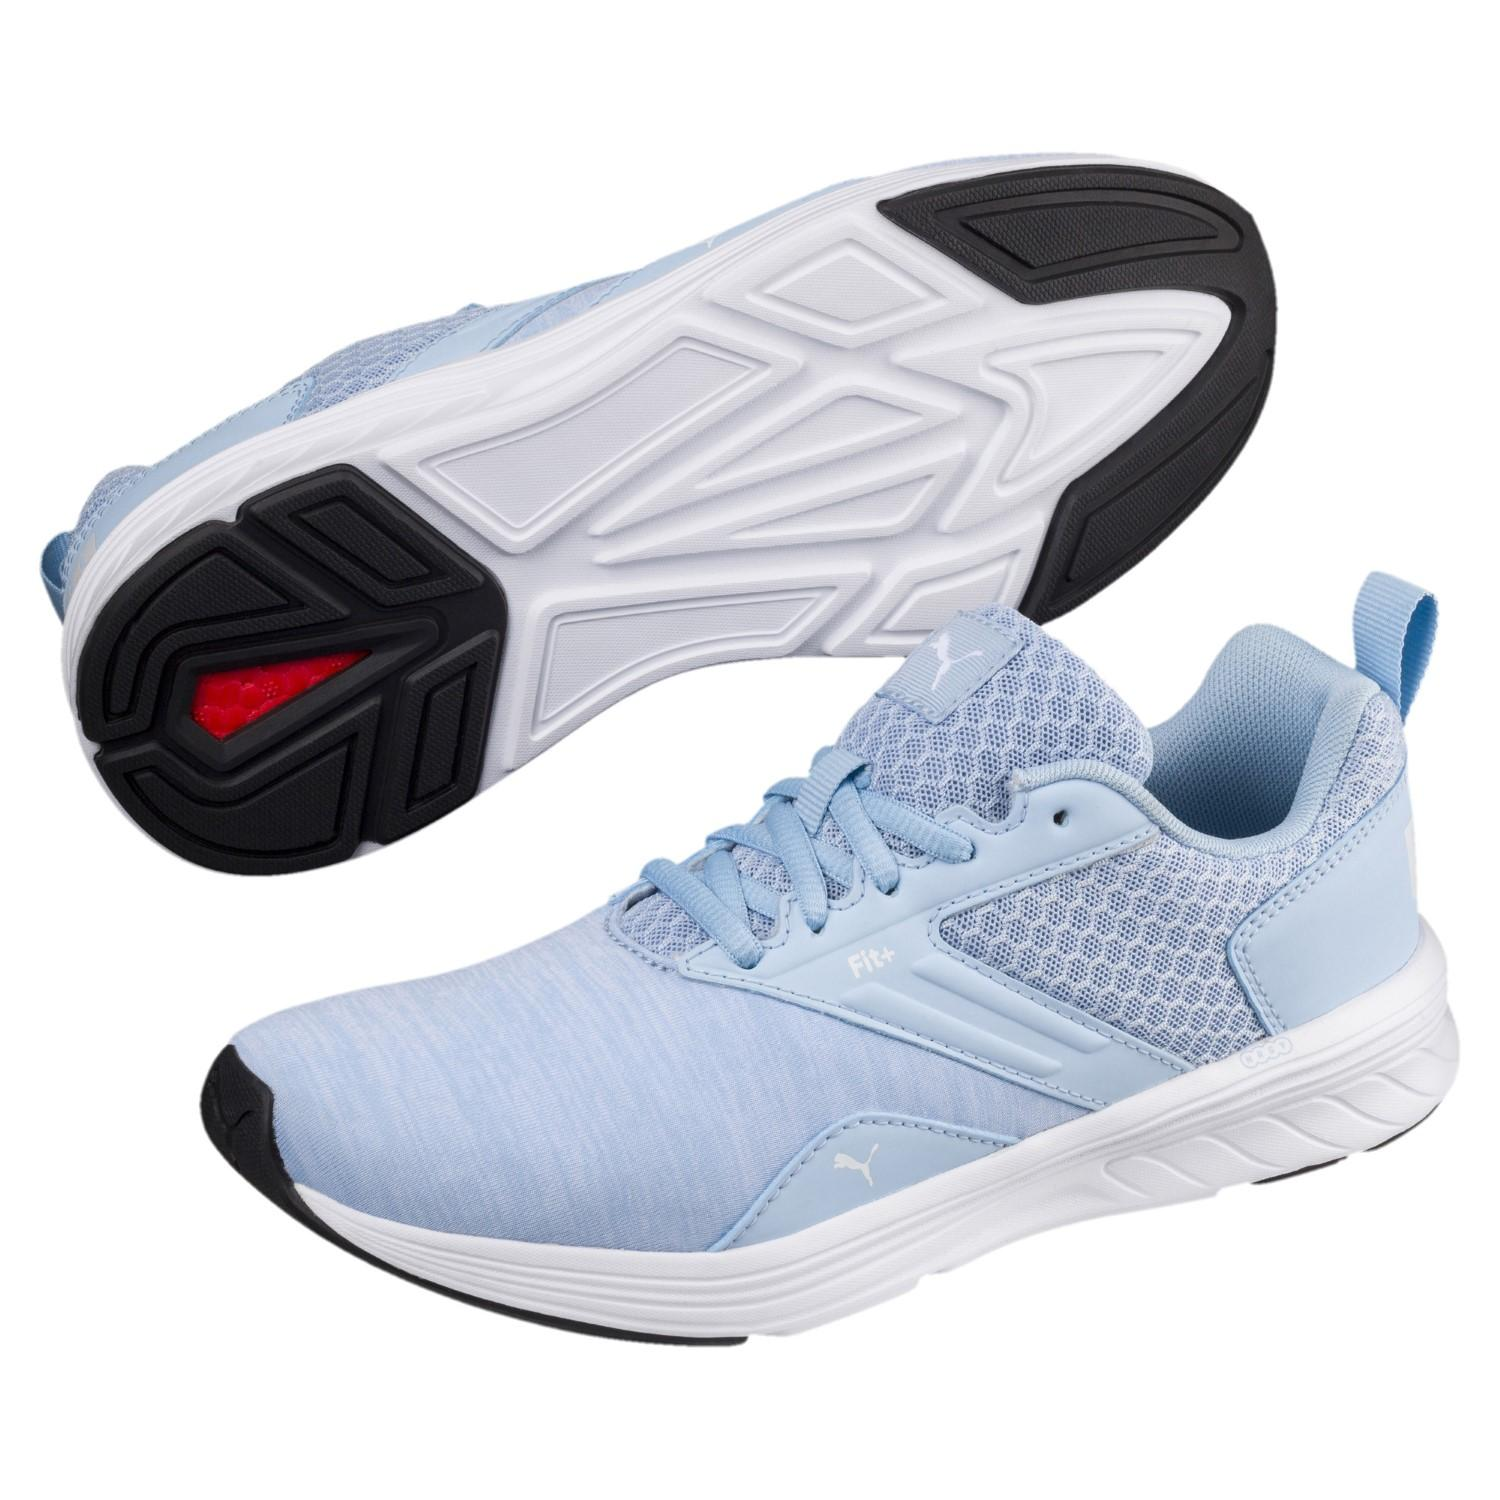 650ad018cb5bd4 Lyst - PUMA Nrgy Comet Running Shoes in White for Men - Save 38%